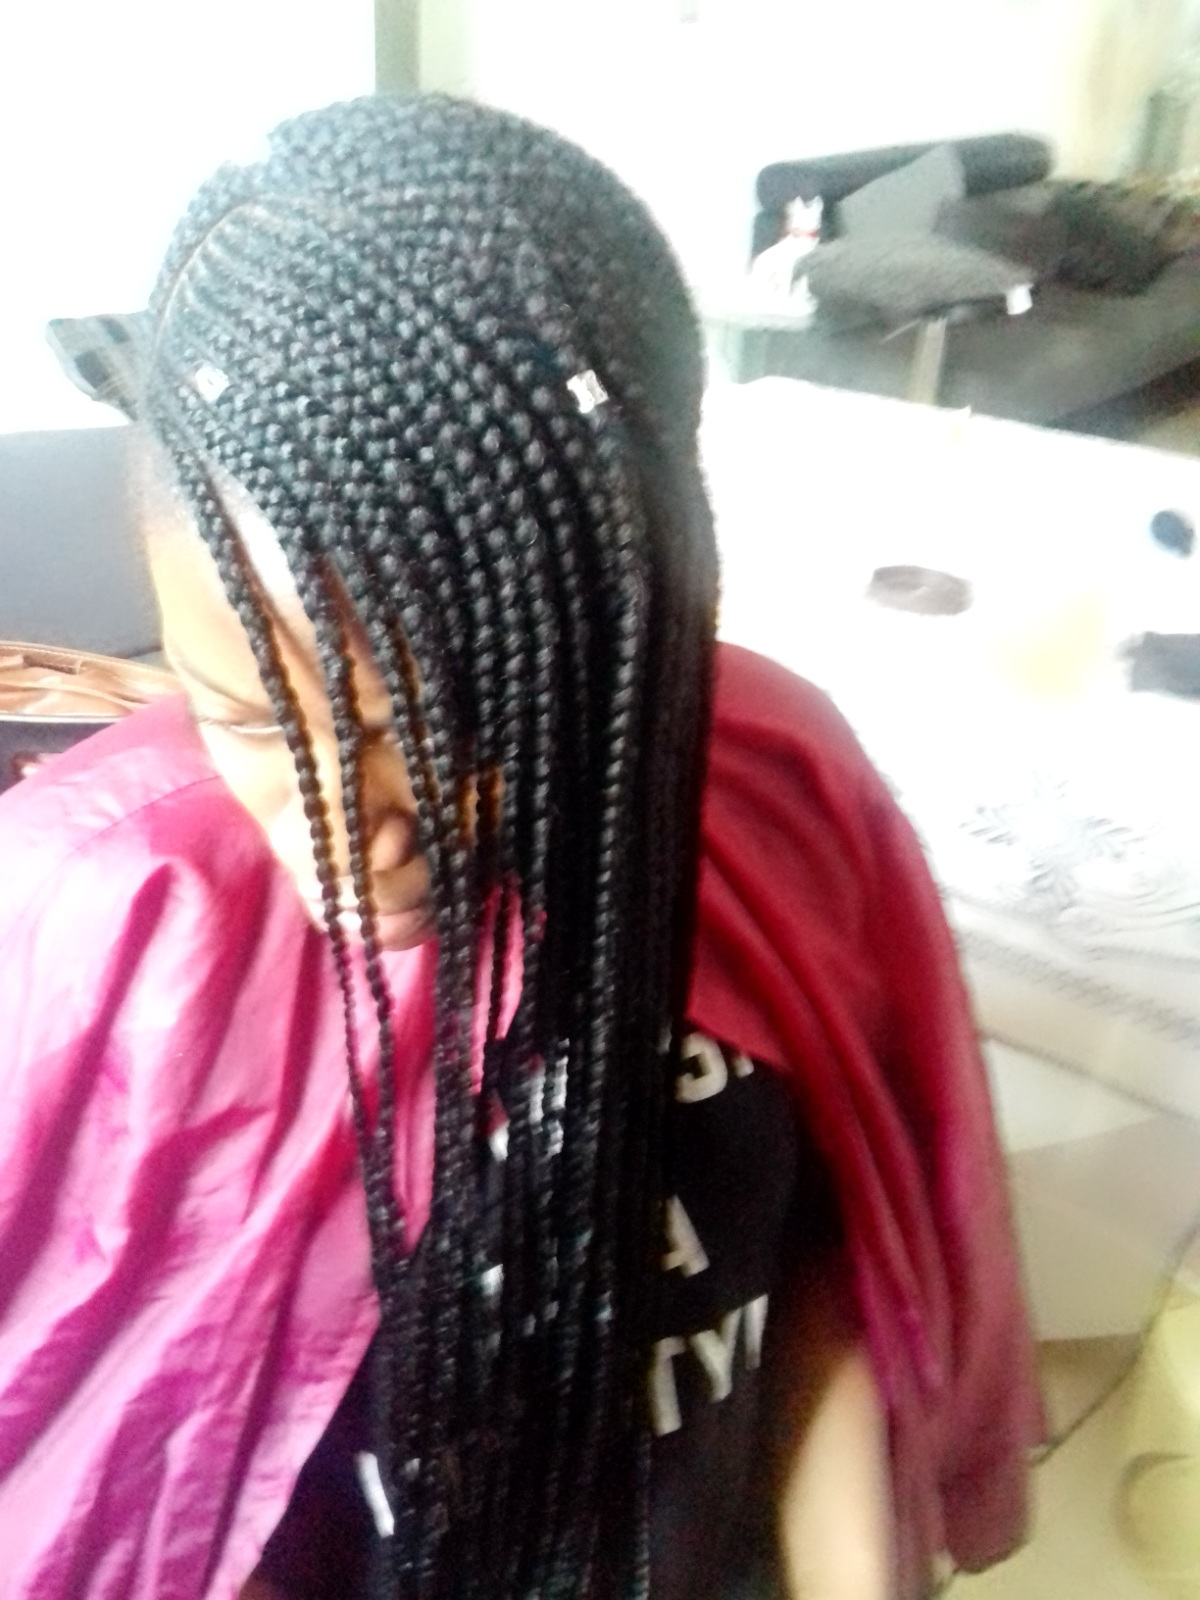 salon de coiffure afro tresse tresses box braids crochet braids vanilles tissages paris 75 77 78 91 92 93 94 95 PNPYCUSB